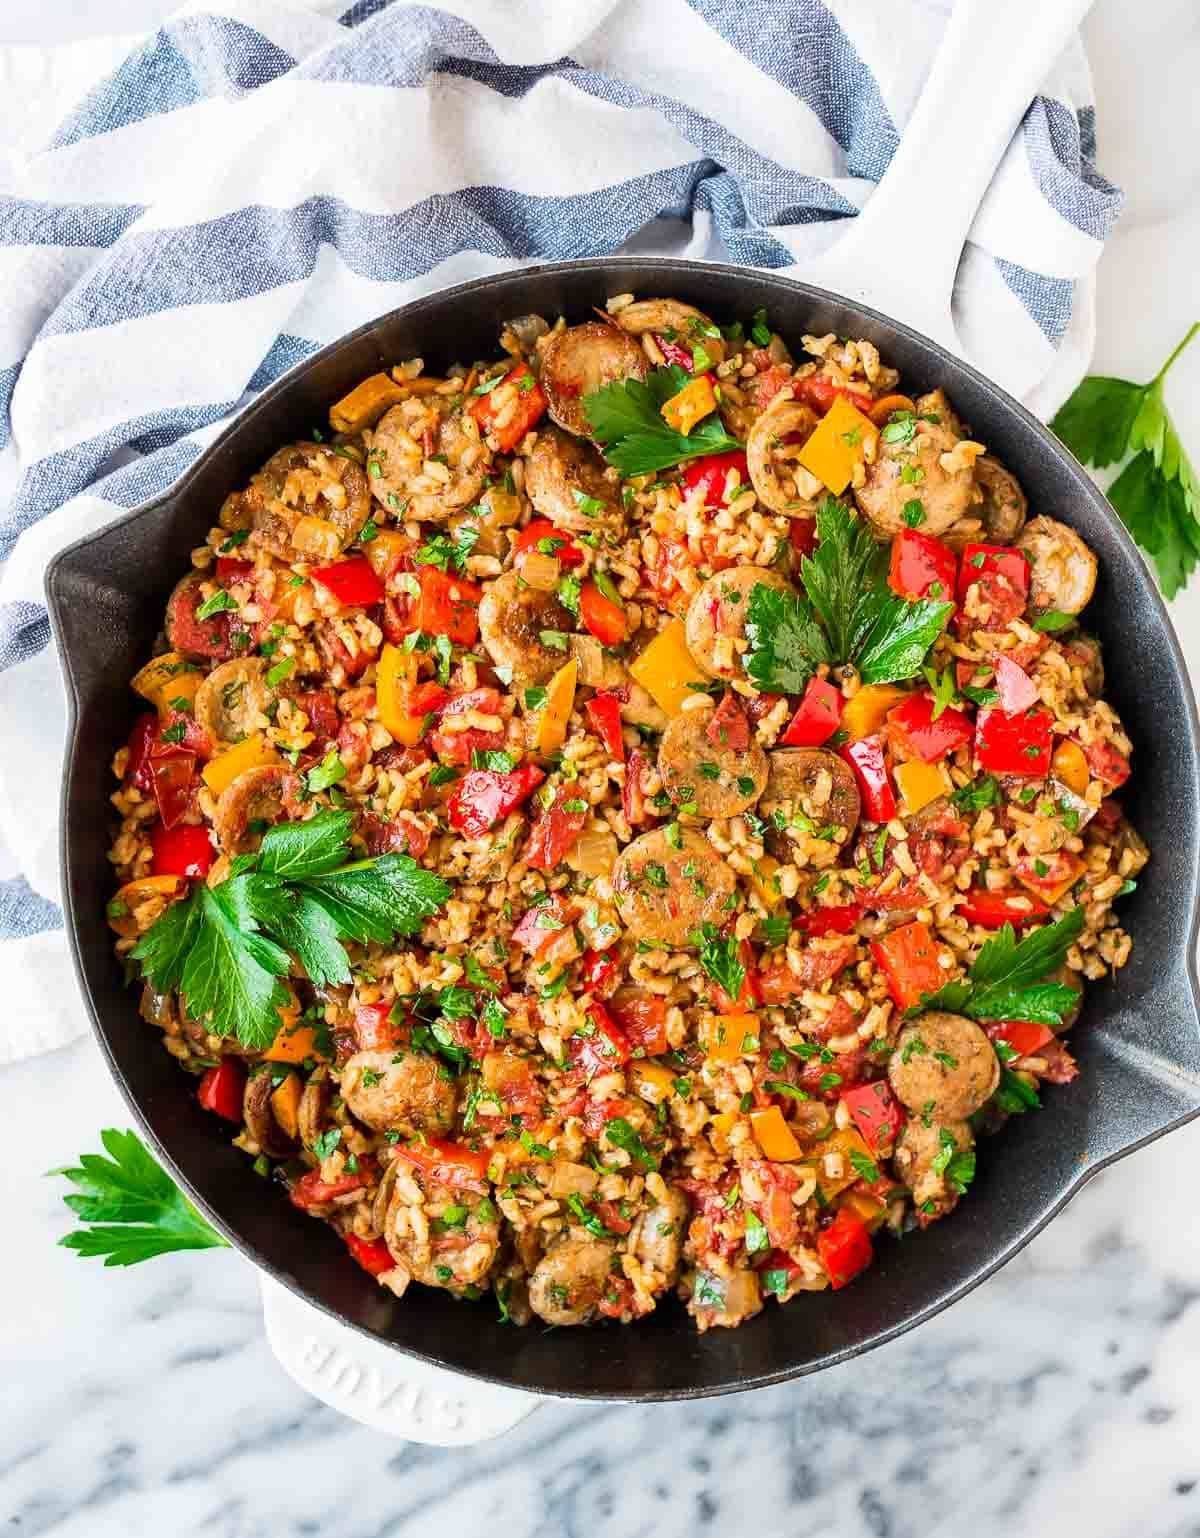 Easy Italian Sausage and Rice Casserole. Ready in 30 minutes! Simple, healthy weeknight dinner. Ready in just 30 minutes! Recipe at wellplated.com | @wellplated